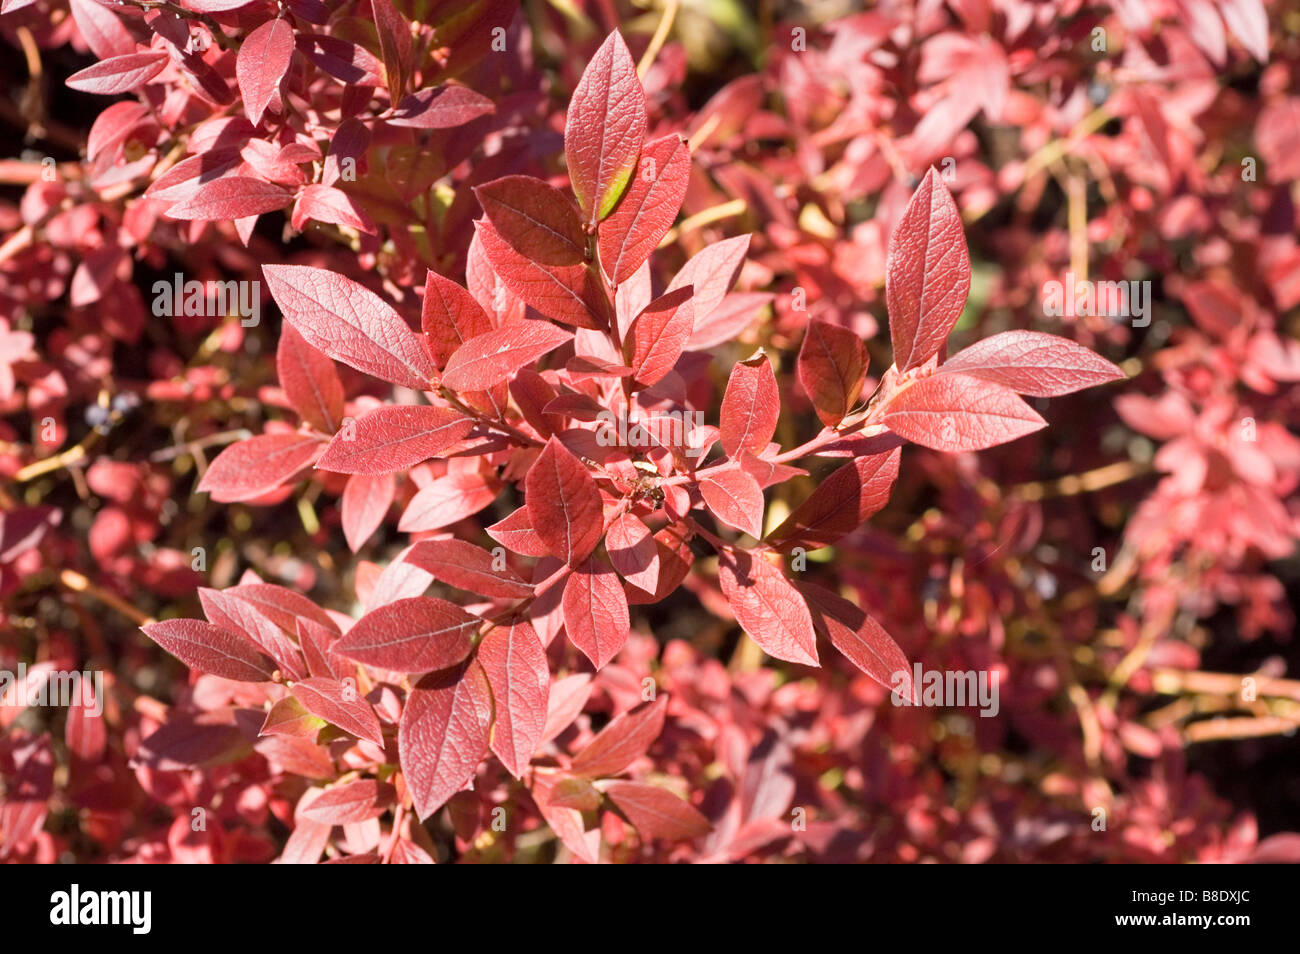 Late lowbush blueberry, Lowbush blueberry, Late low blueberry,  Ericaceae, Vaccinium angustifolium Aiton Emil - Stock Image